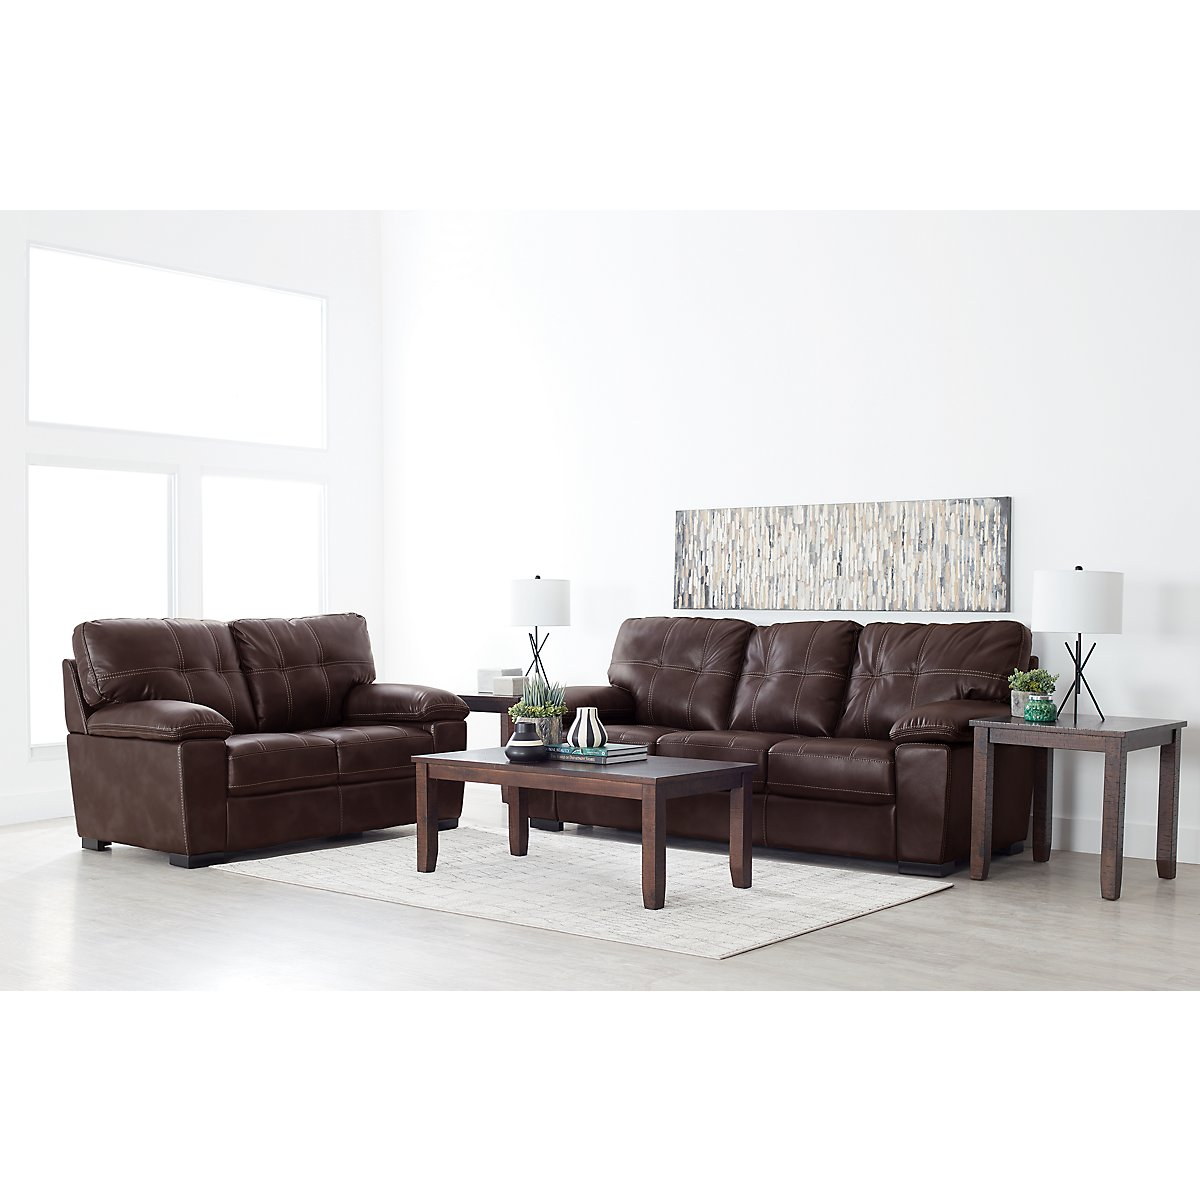 City Furniture: Henry Dark Brown Microfiber Sofa